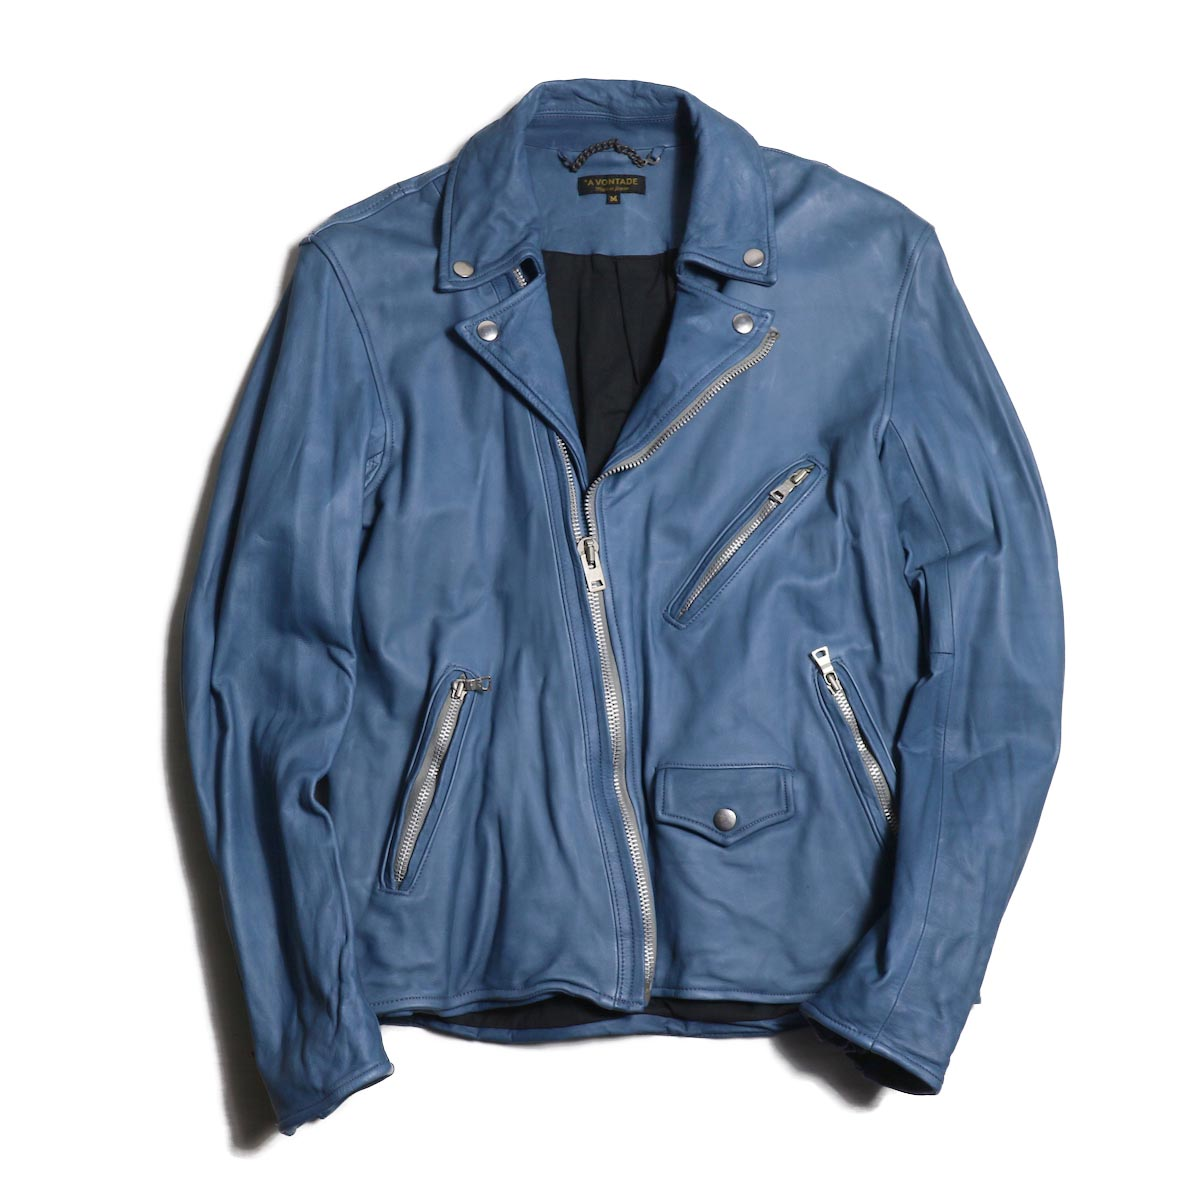 A VONTADE / Roadmaster Jacket -BLUE